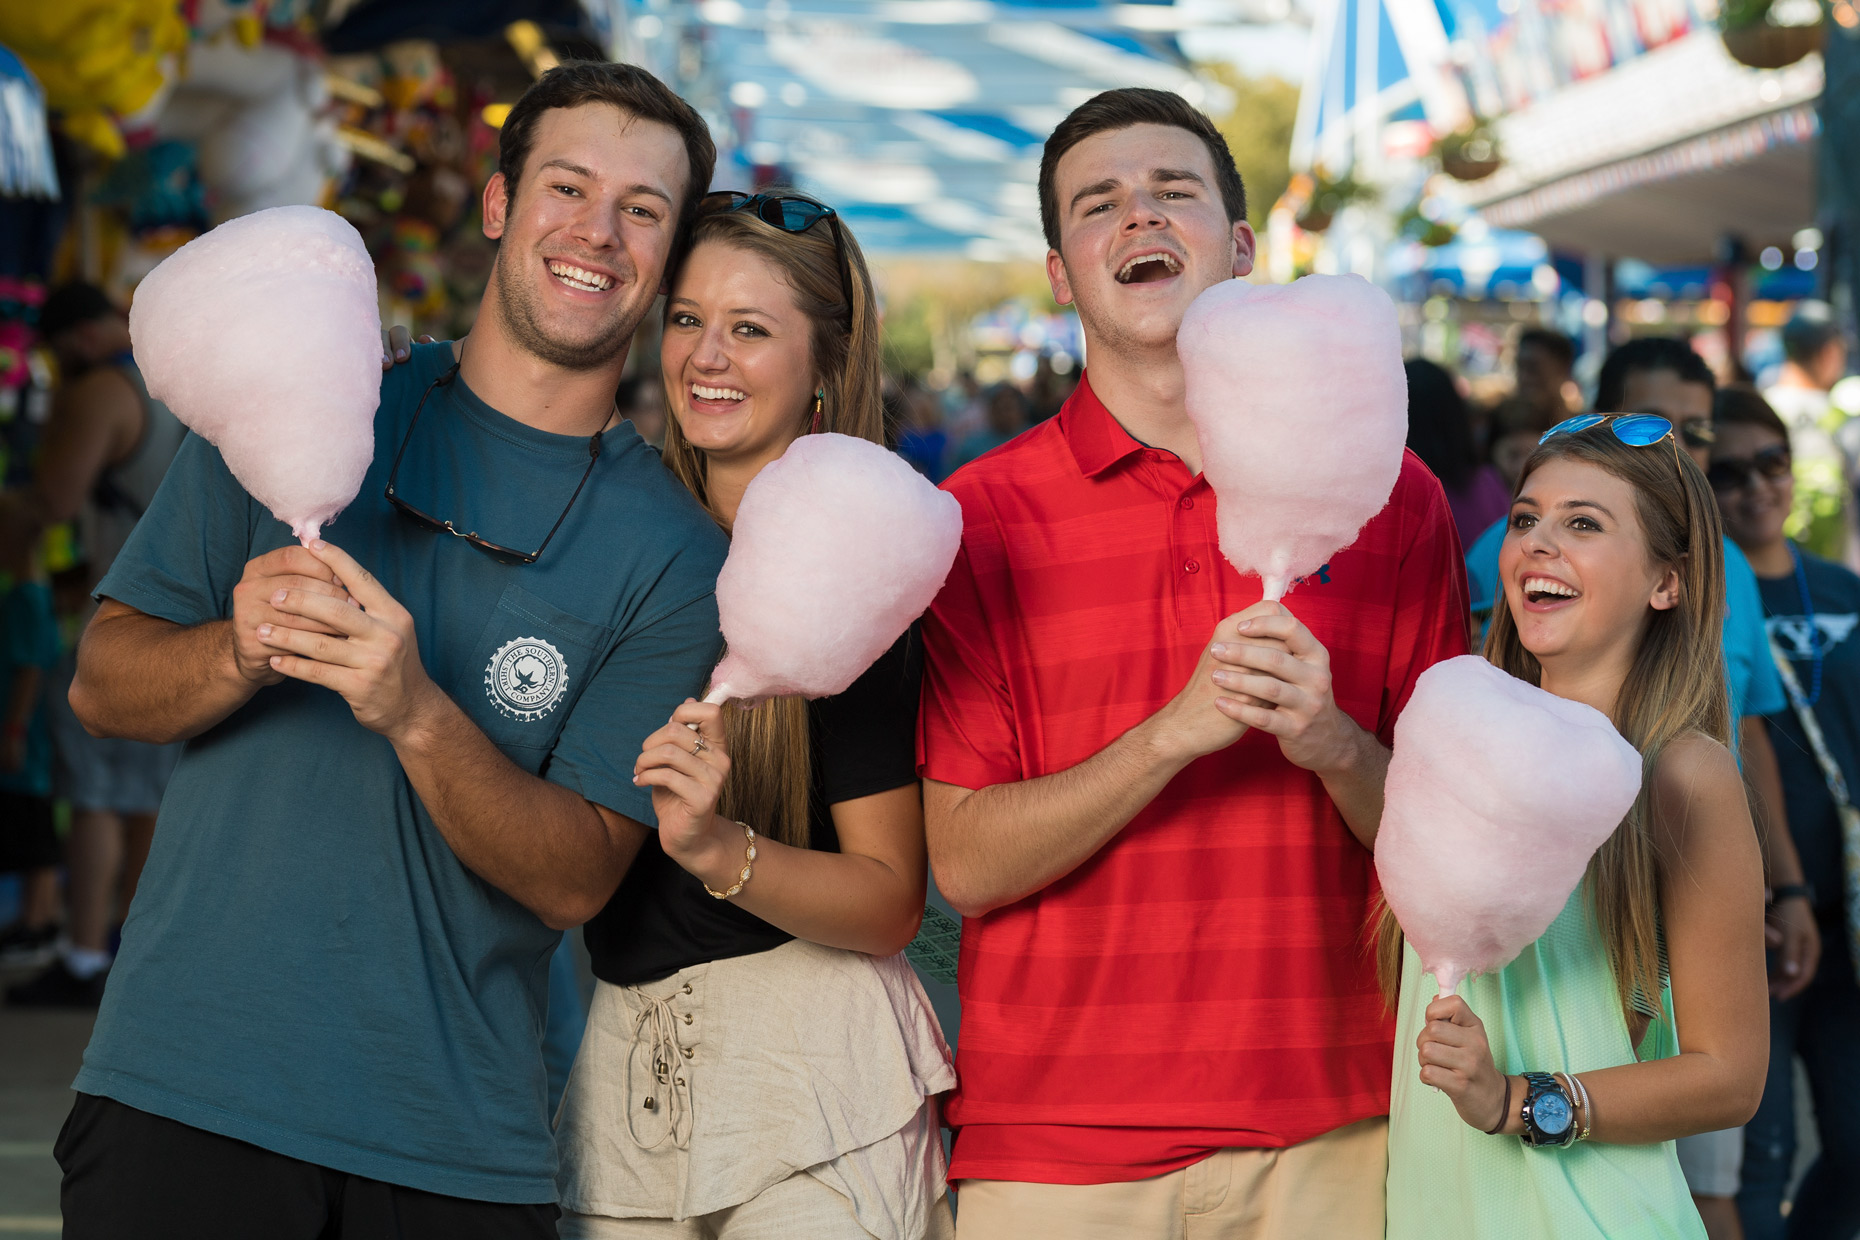 Kids and cotton candy at The State Fair of Texas. Photography by Kevin Brown